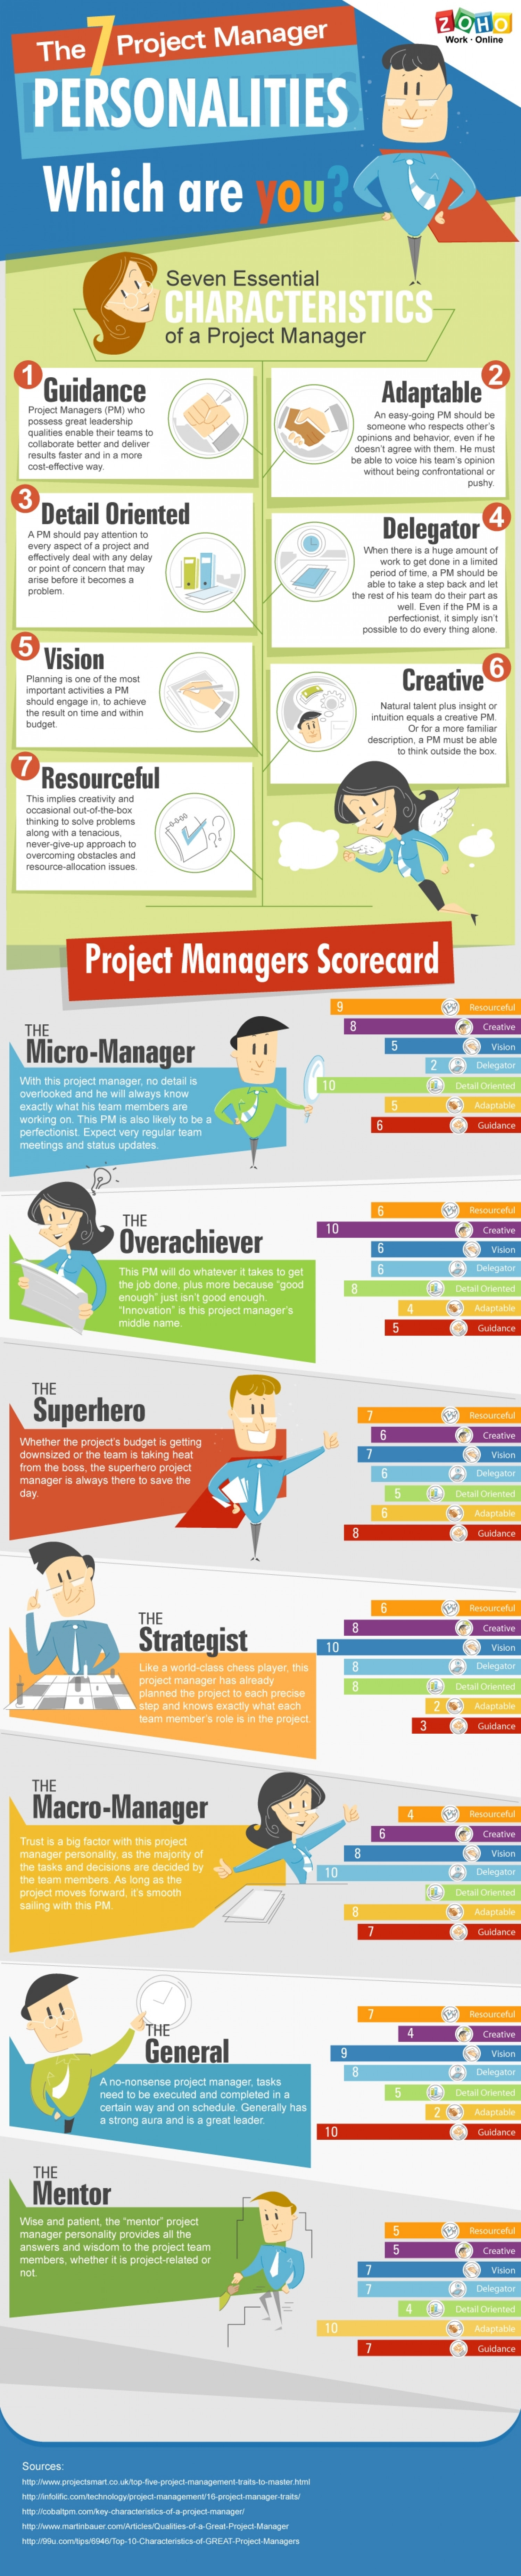 The 7 Project Manager Personalities: Which One Are You? Infographic